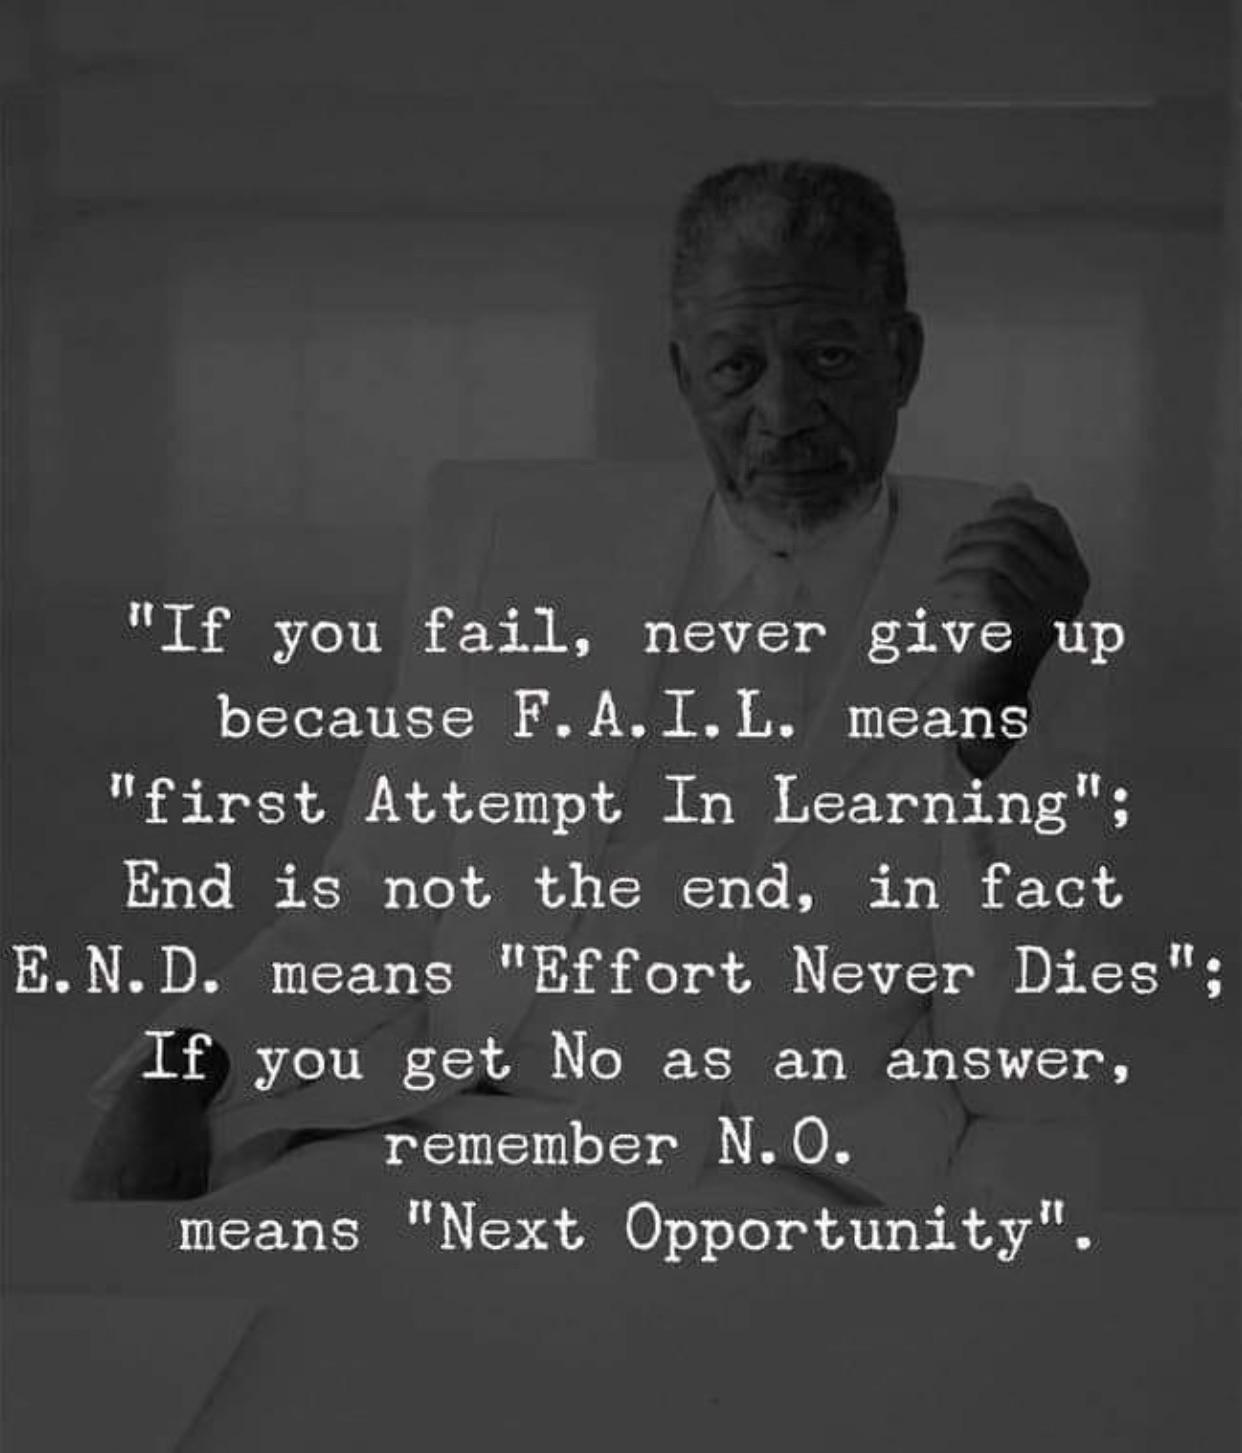 [Image] Never give up. Here's why.